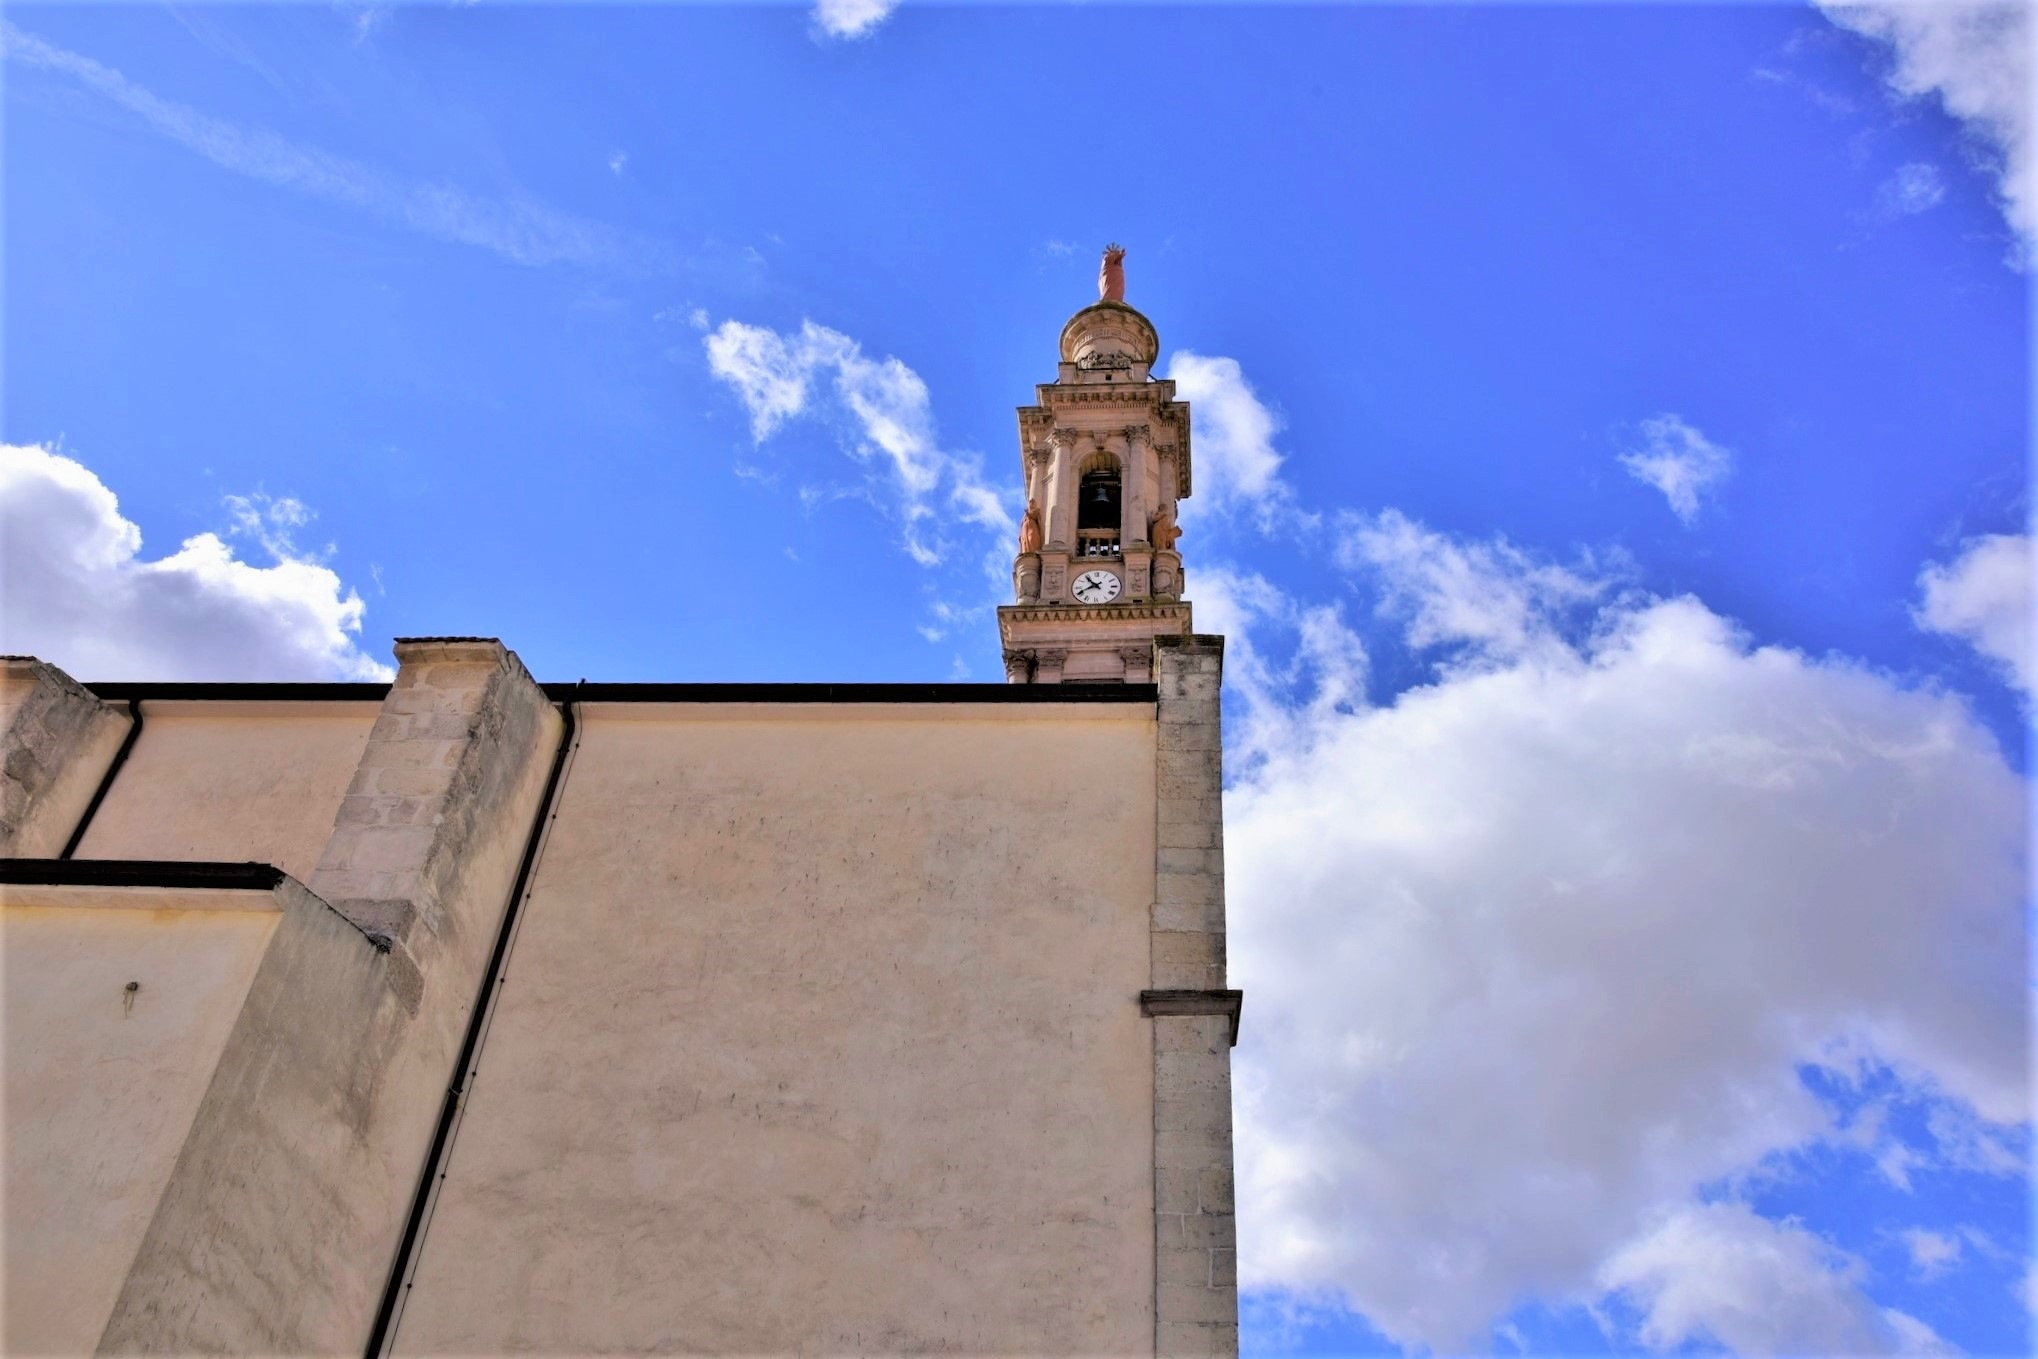 Bell towers that touch the sky by ignazio cruccas